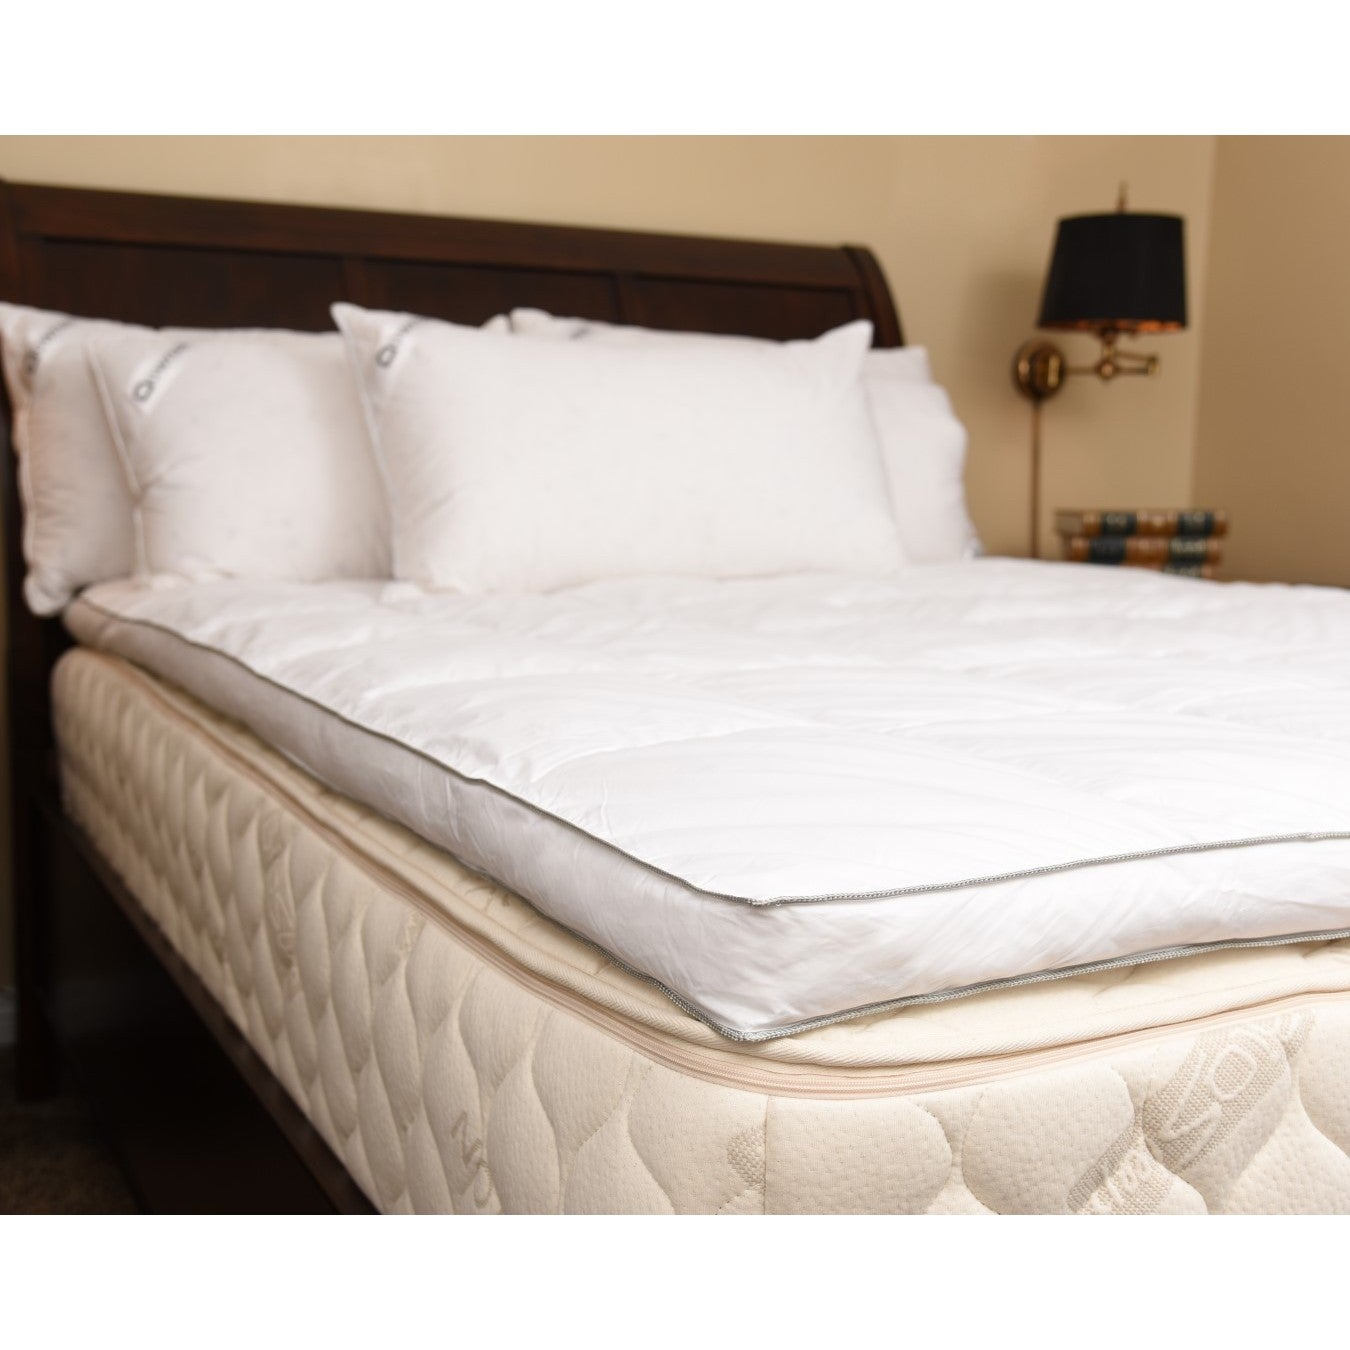 co canadian luxurious down topper king bed mattress mountain moose kitchen dp amazon feather home enhancer goose super uk